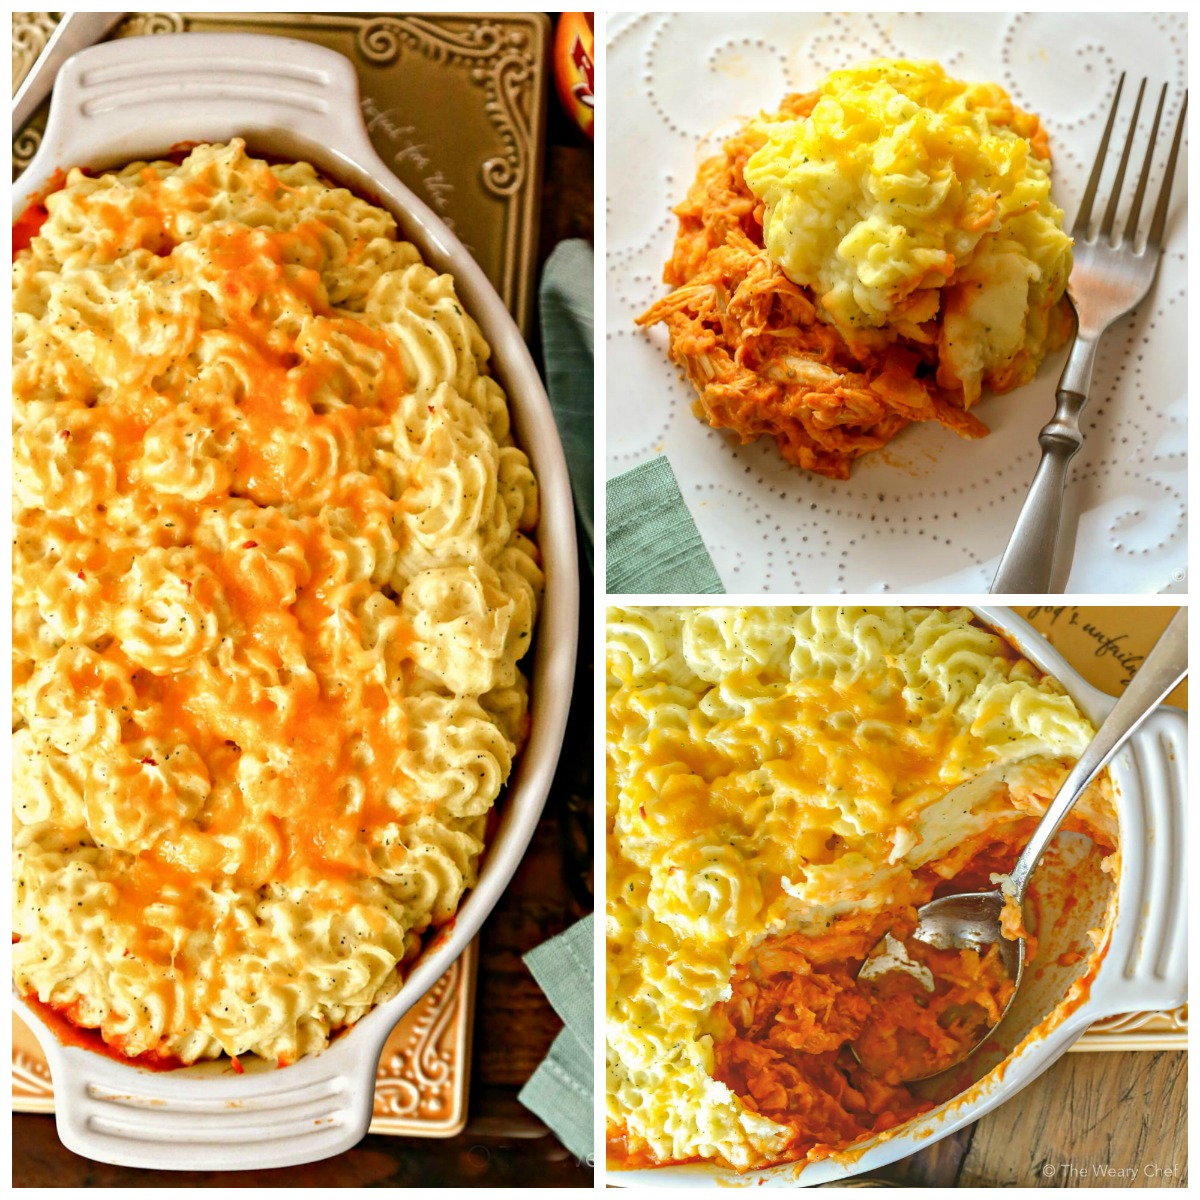 Buffalo chicken shepherds pie the weary chef classic buffalo chicken dip is reinvented into a comforting family dinnerbuffalo chicken shepherds pie forumfinder Image collections